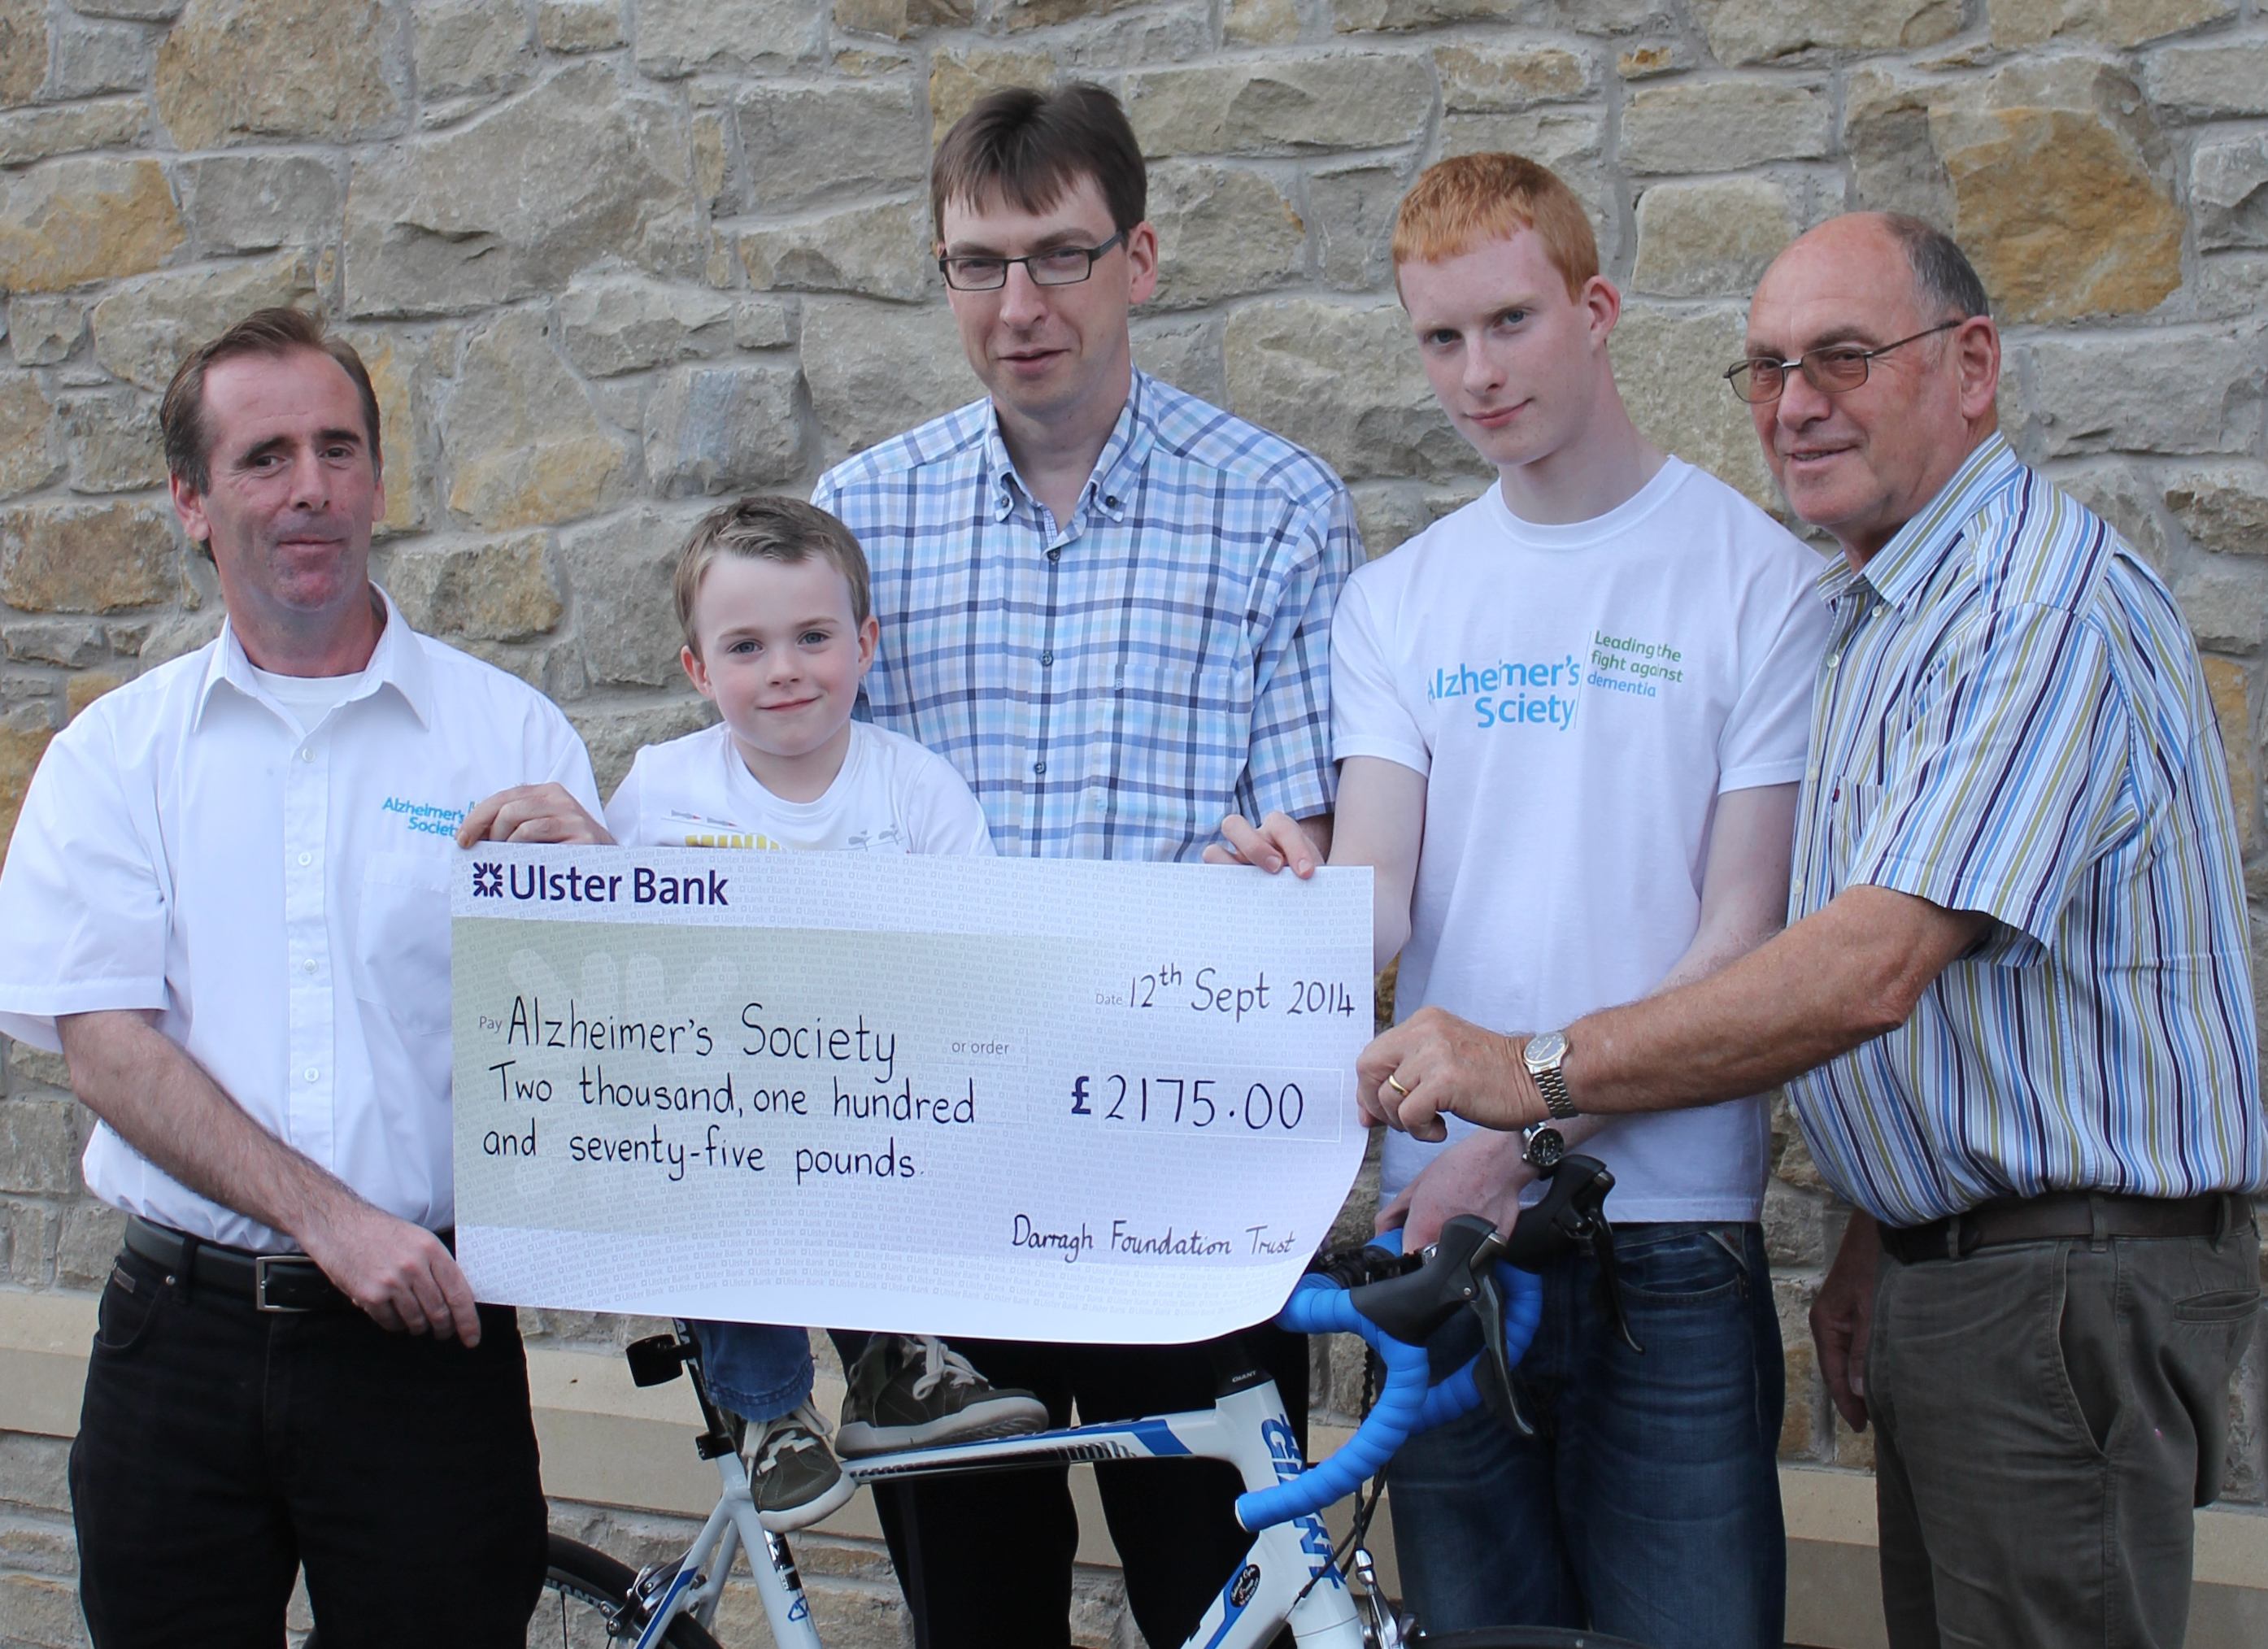 Darragh Foundation Trust - £2175.00 raised